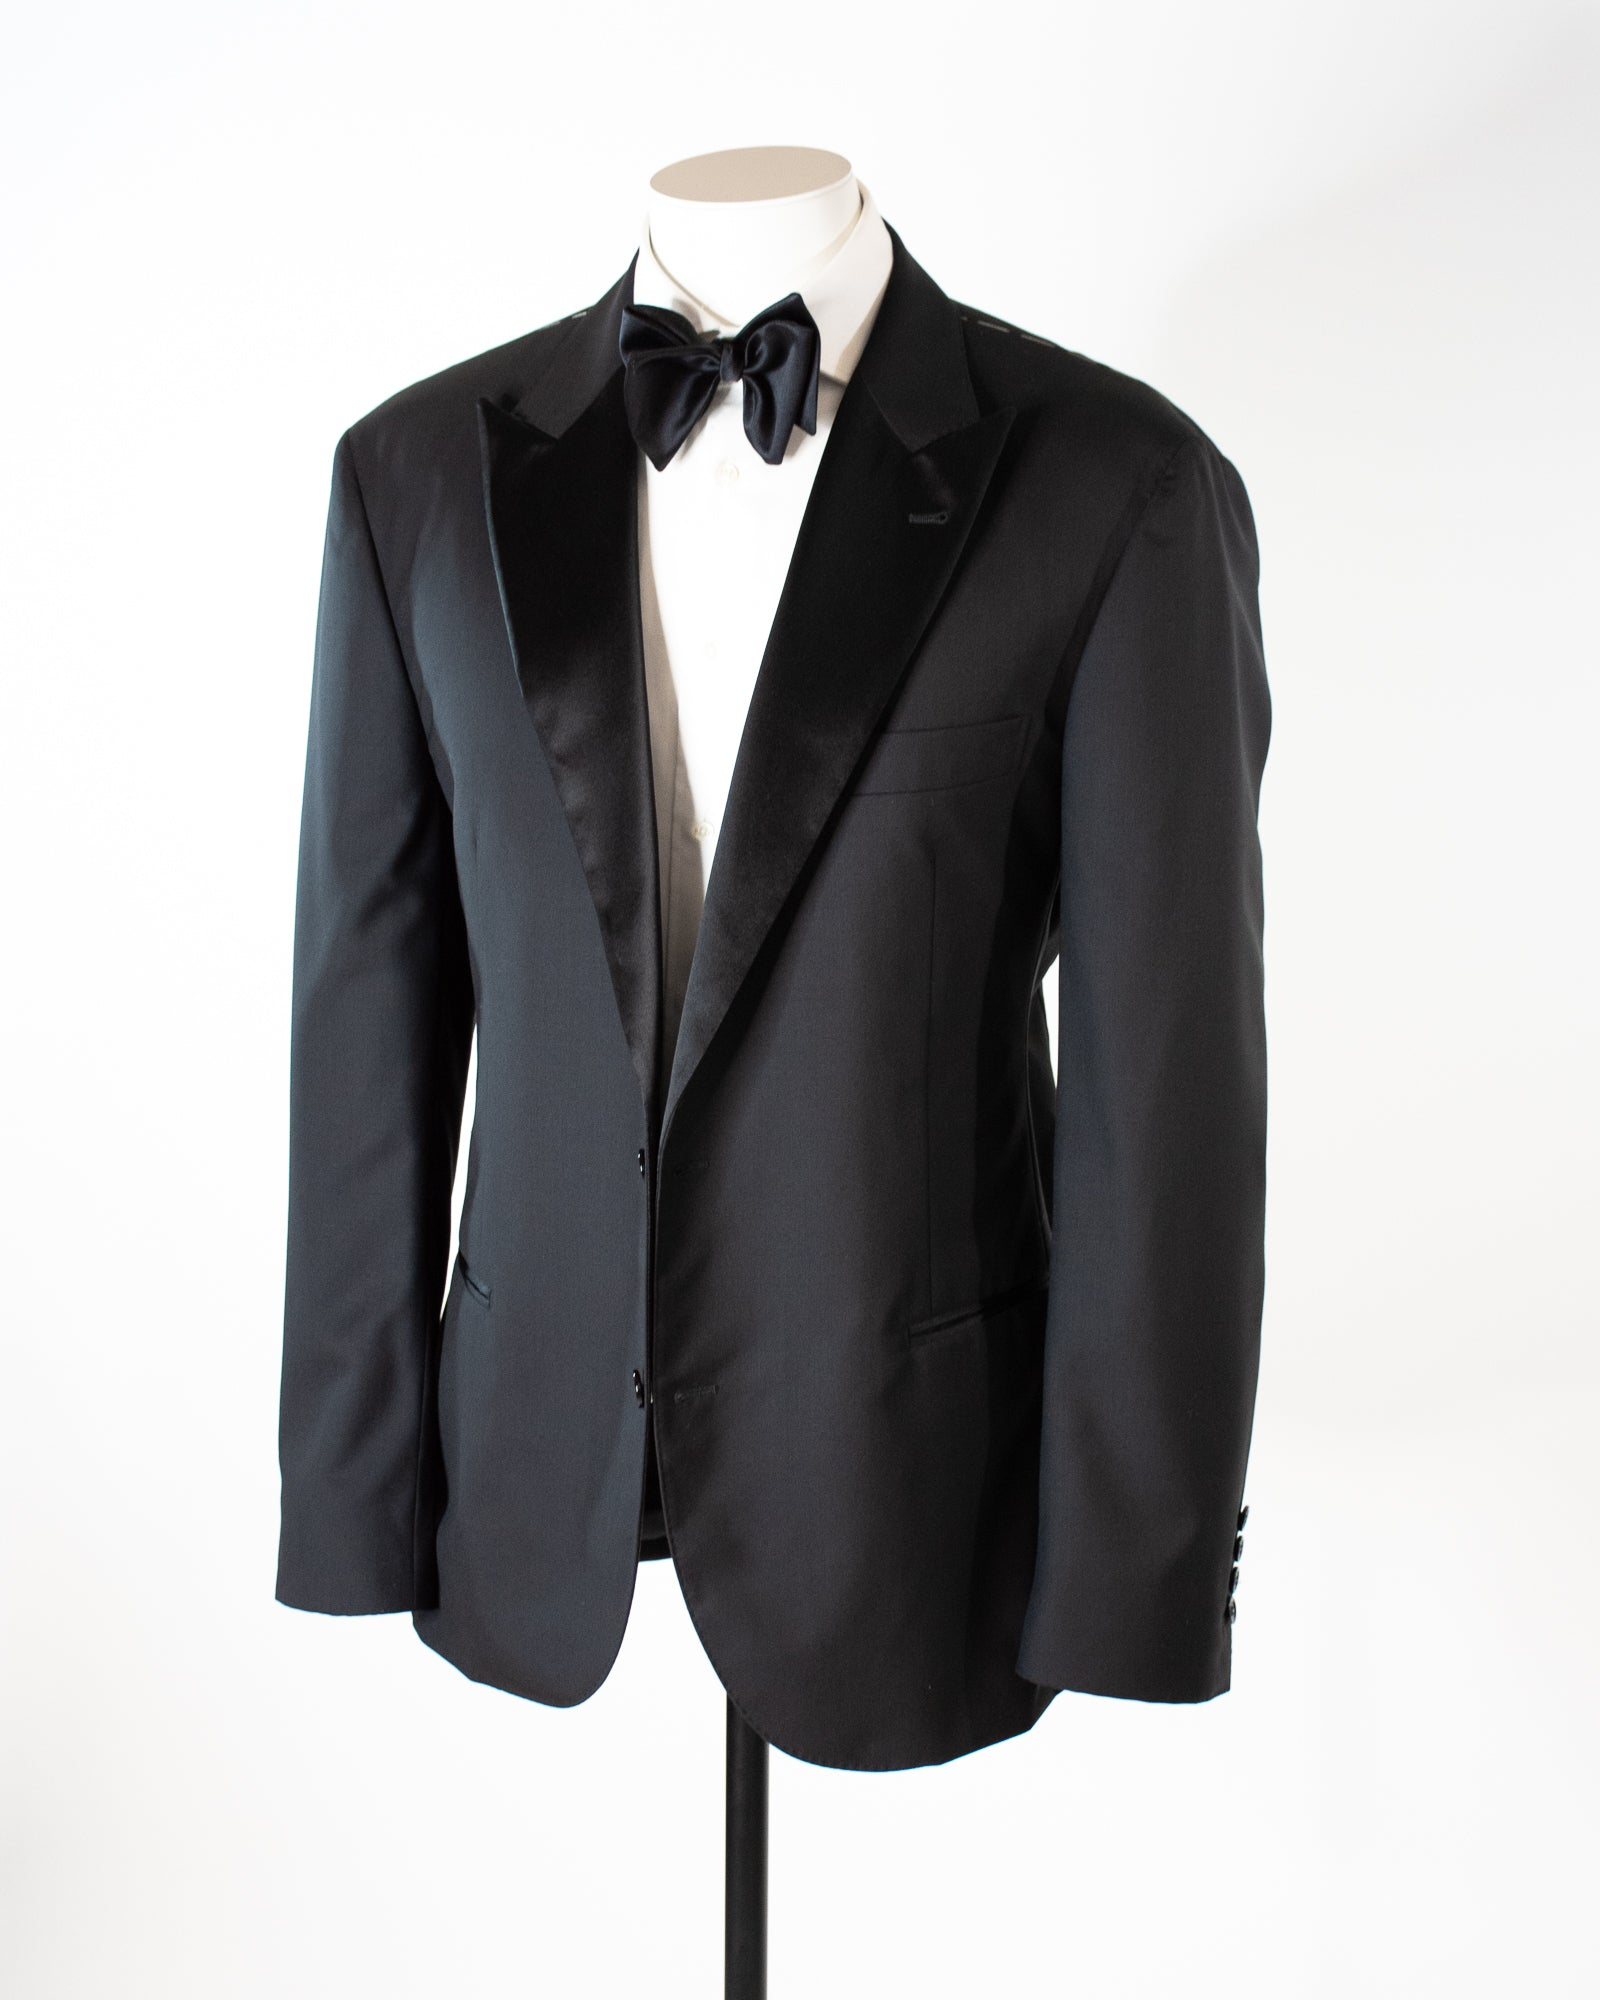 BRUNELLO CUCINELLI Single Breasted Dinner Suit